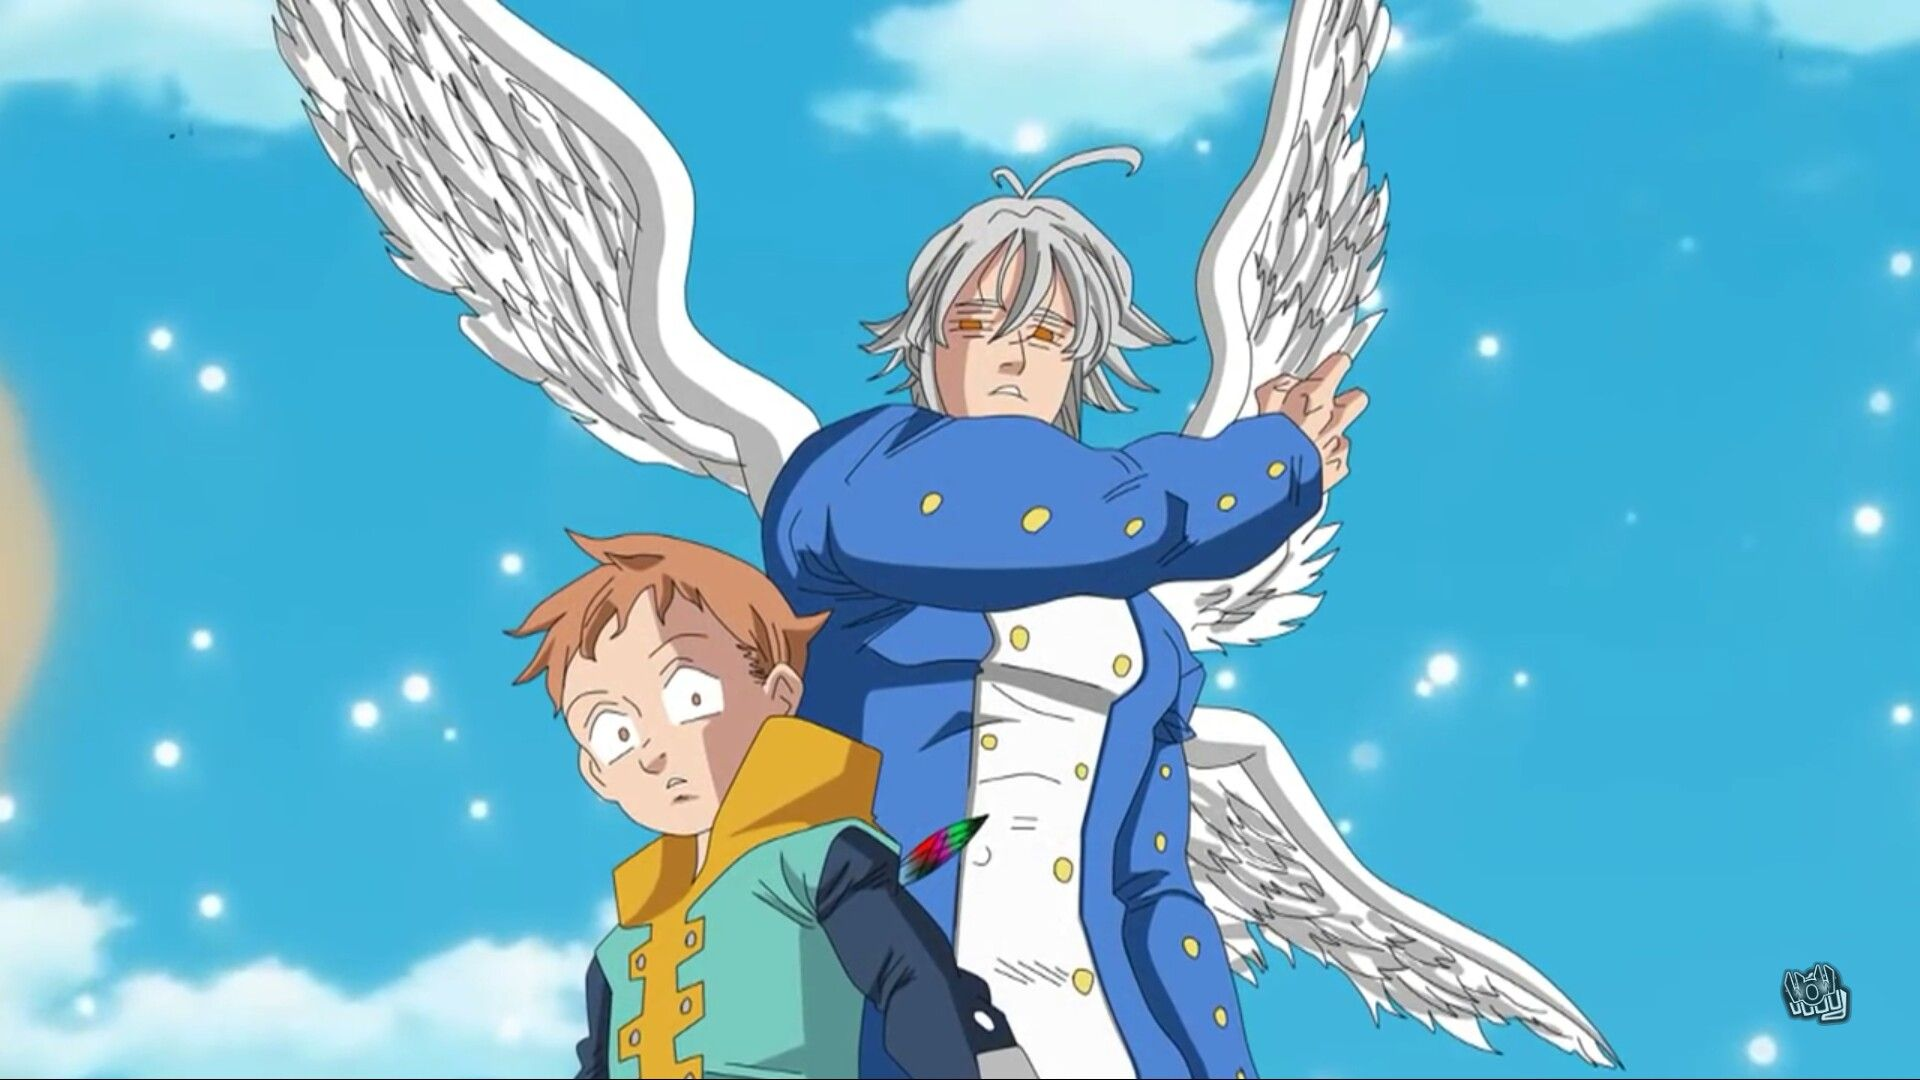 Pin By Uknown On Anime Seven Deadly Sins Anime Anime Characters Anime